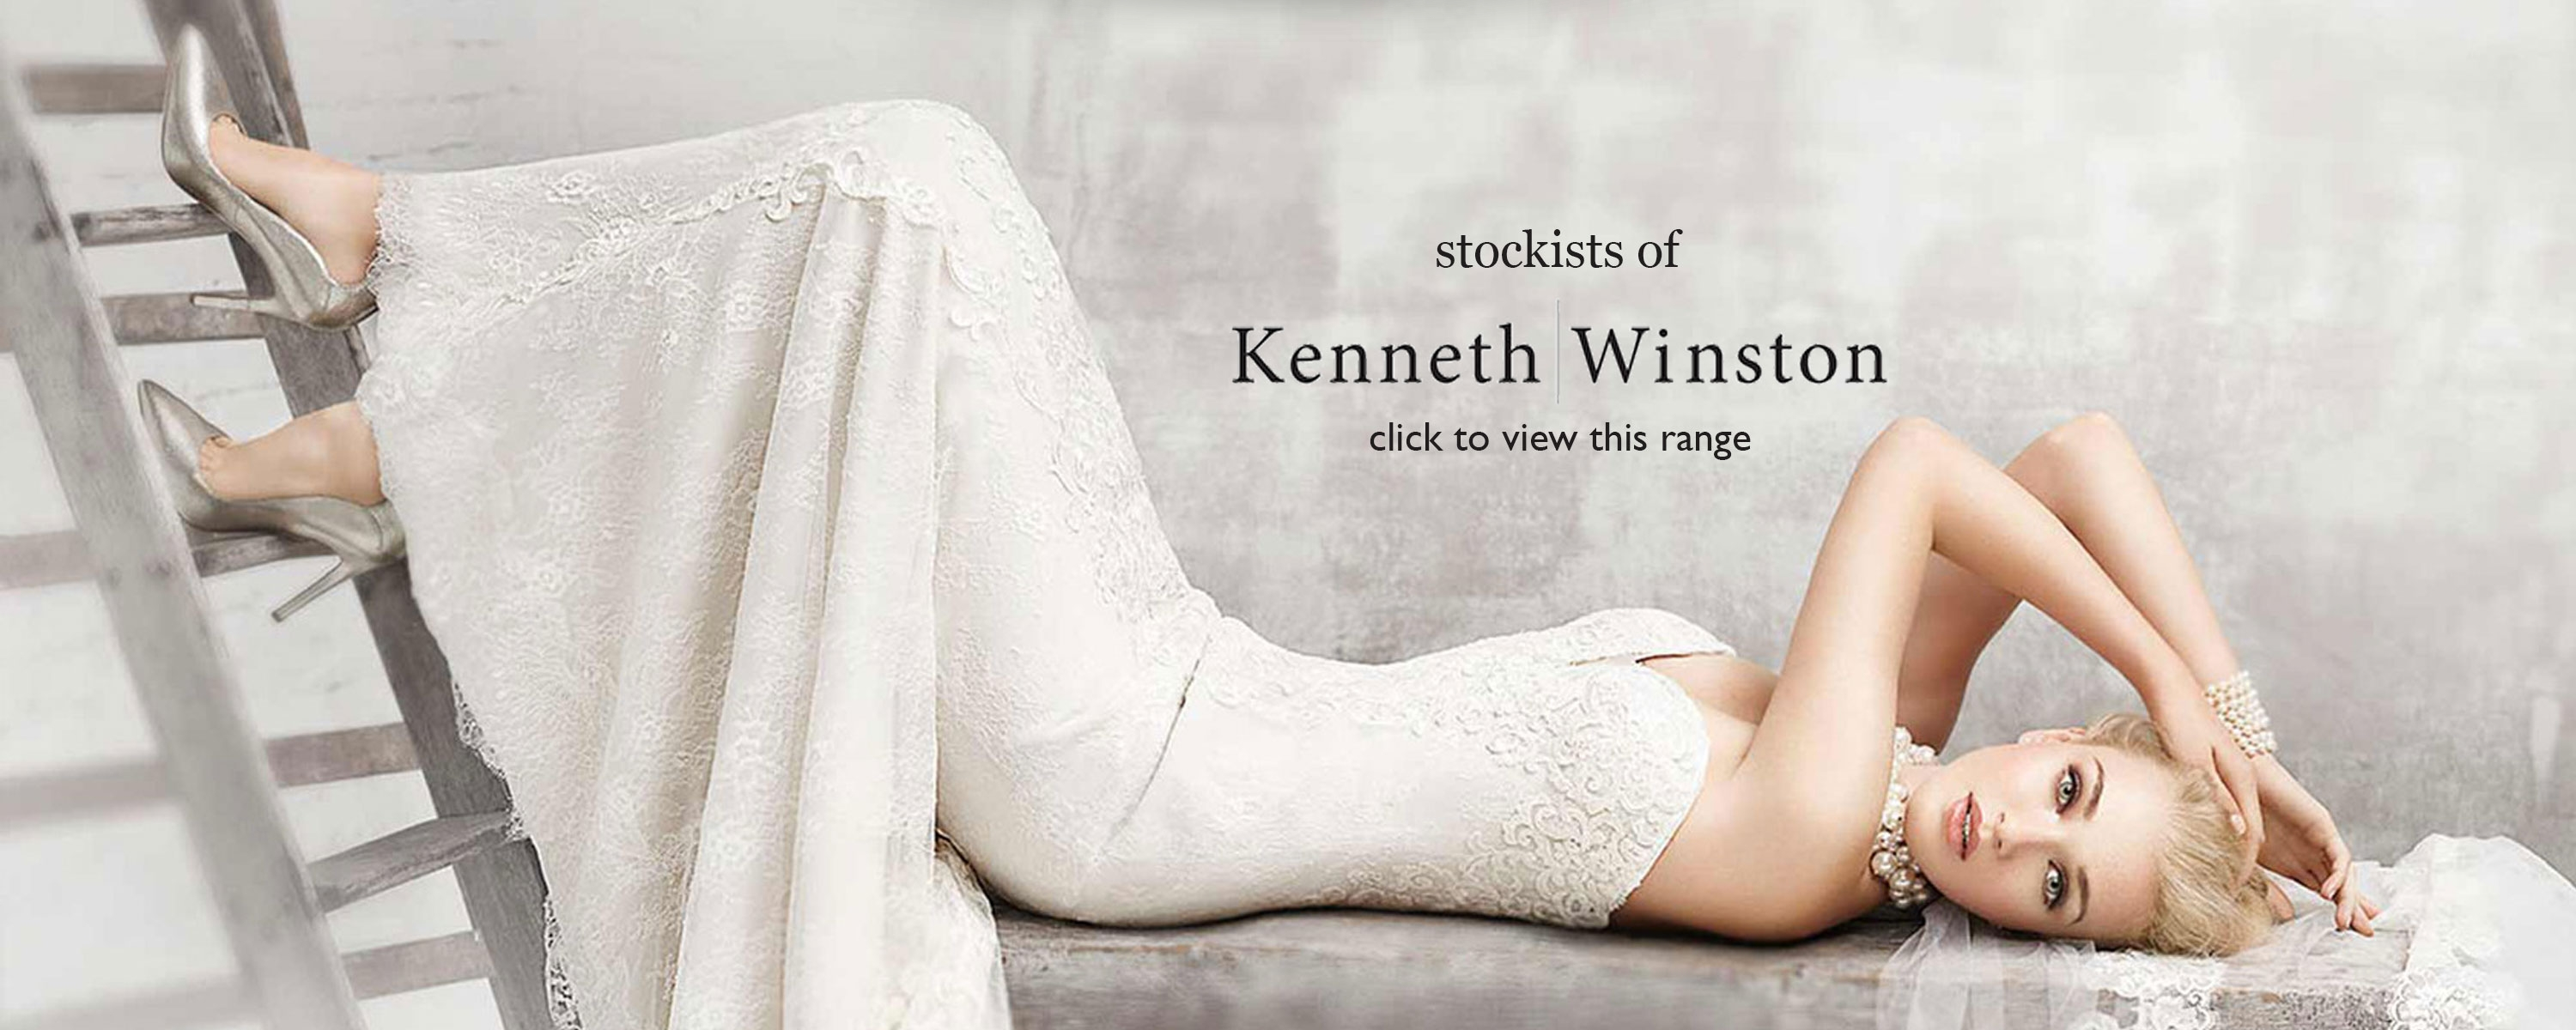 Kenneth Winston Stockists Sutton Coldfield Birmingham